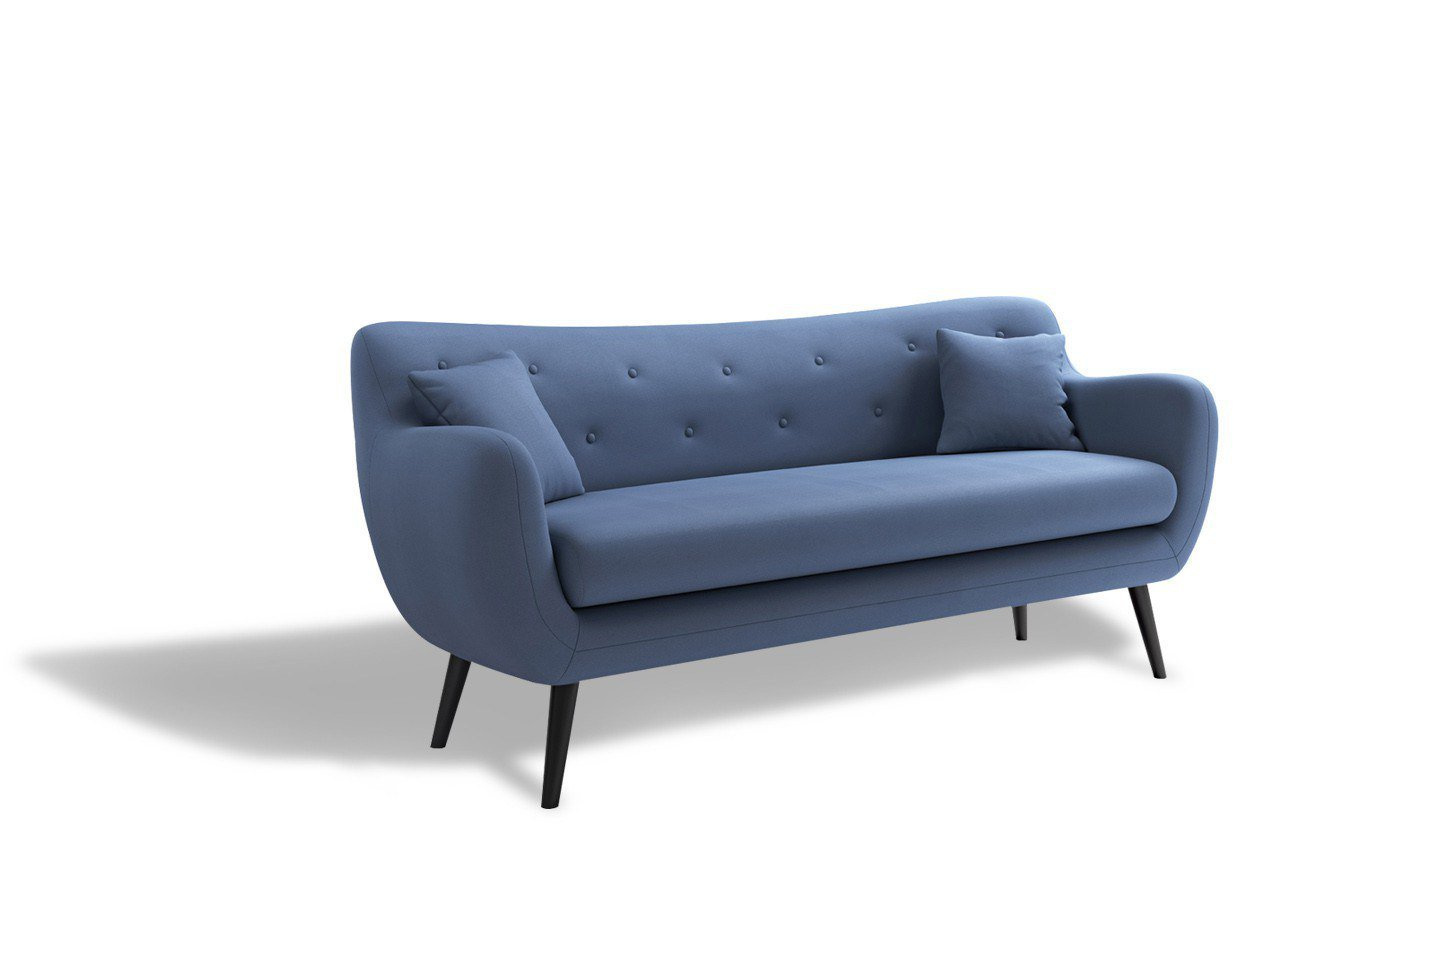 new look george sofa in blau m bel letz ihr online shop. Black Bedroom Furniture Sets. Home Design Ideas